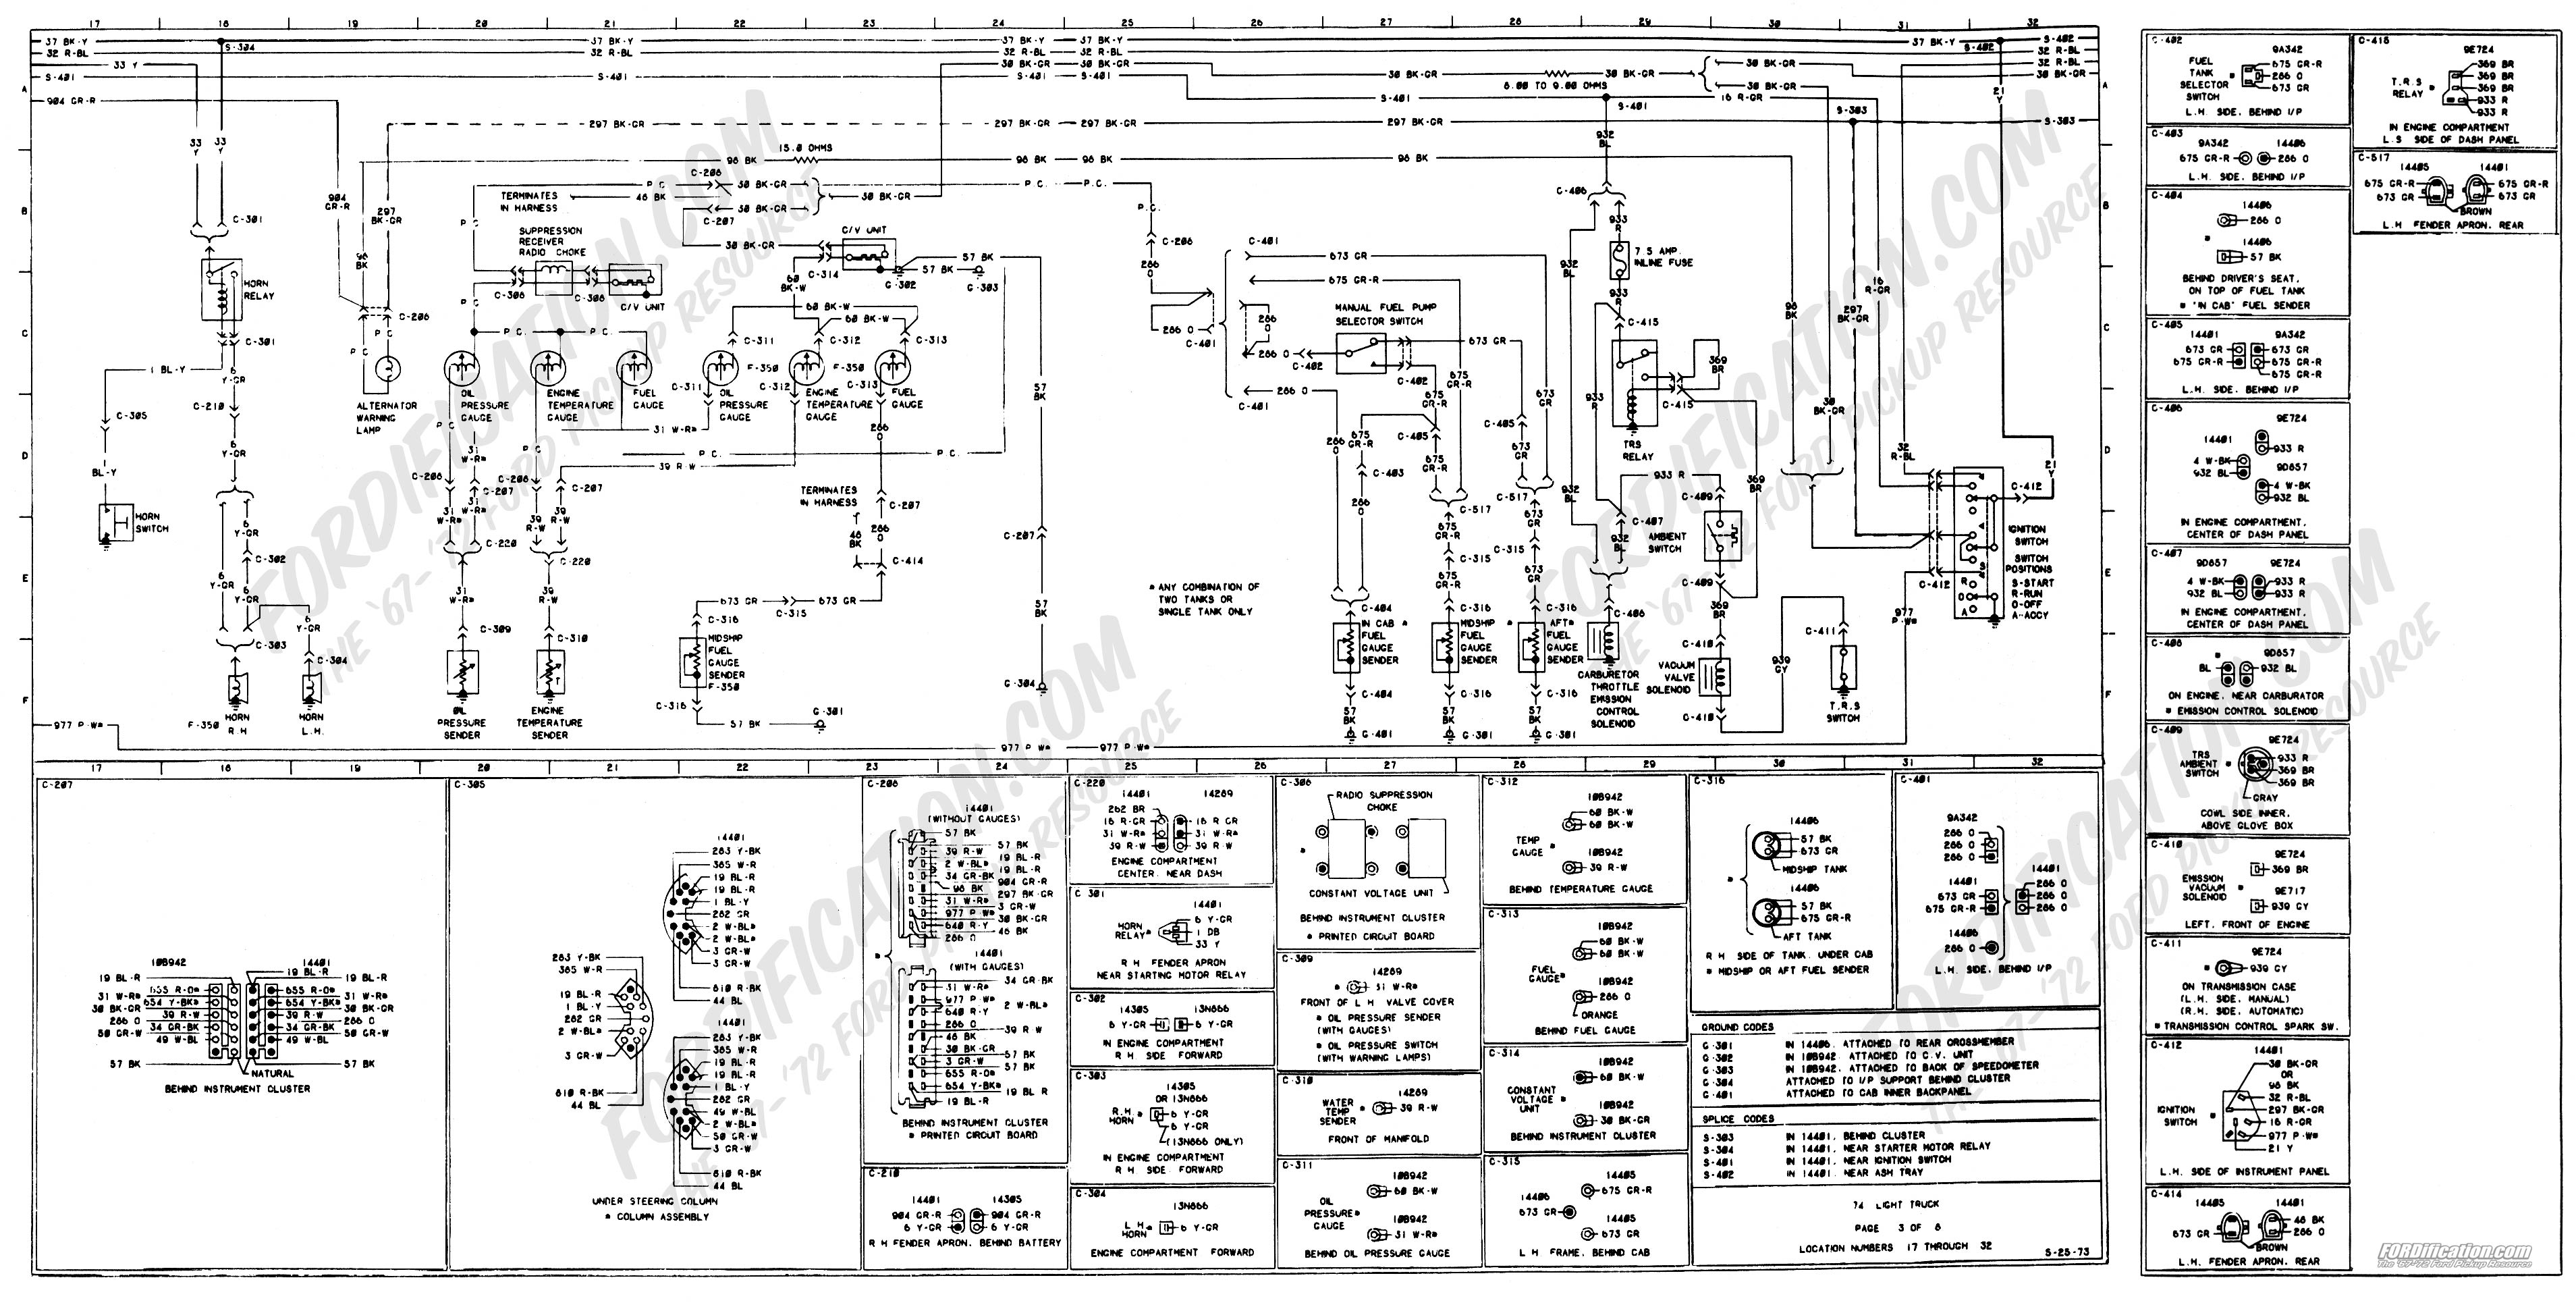 1973 1979 Ford Truck Wiring Diagrams & Schematics Fordification Net Ford  E450 Wiring 1976 Ford F700 Dash Wiring